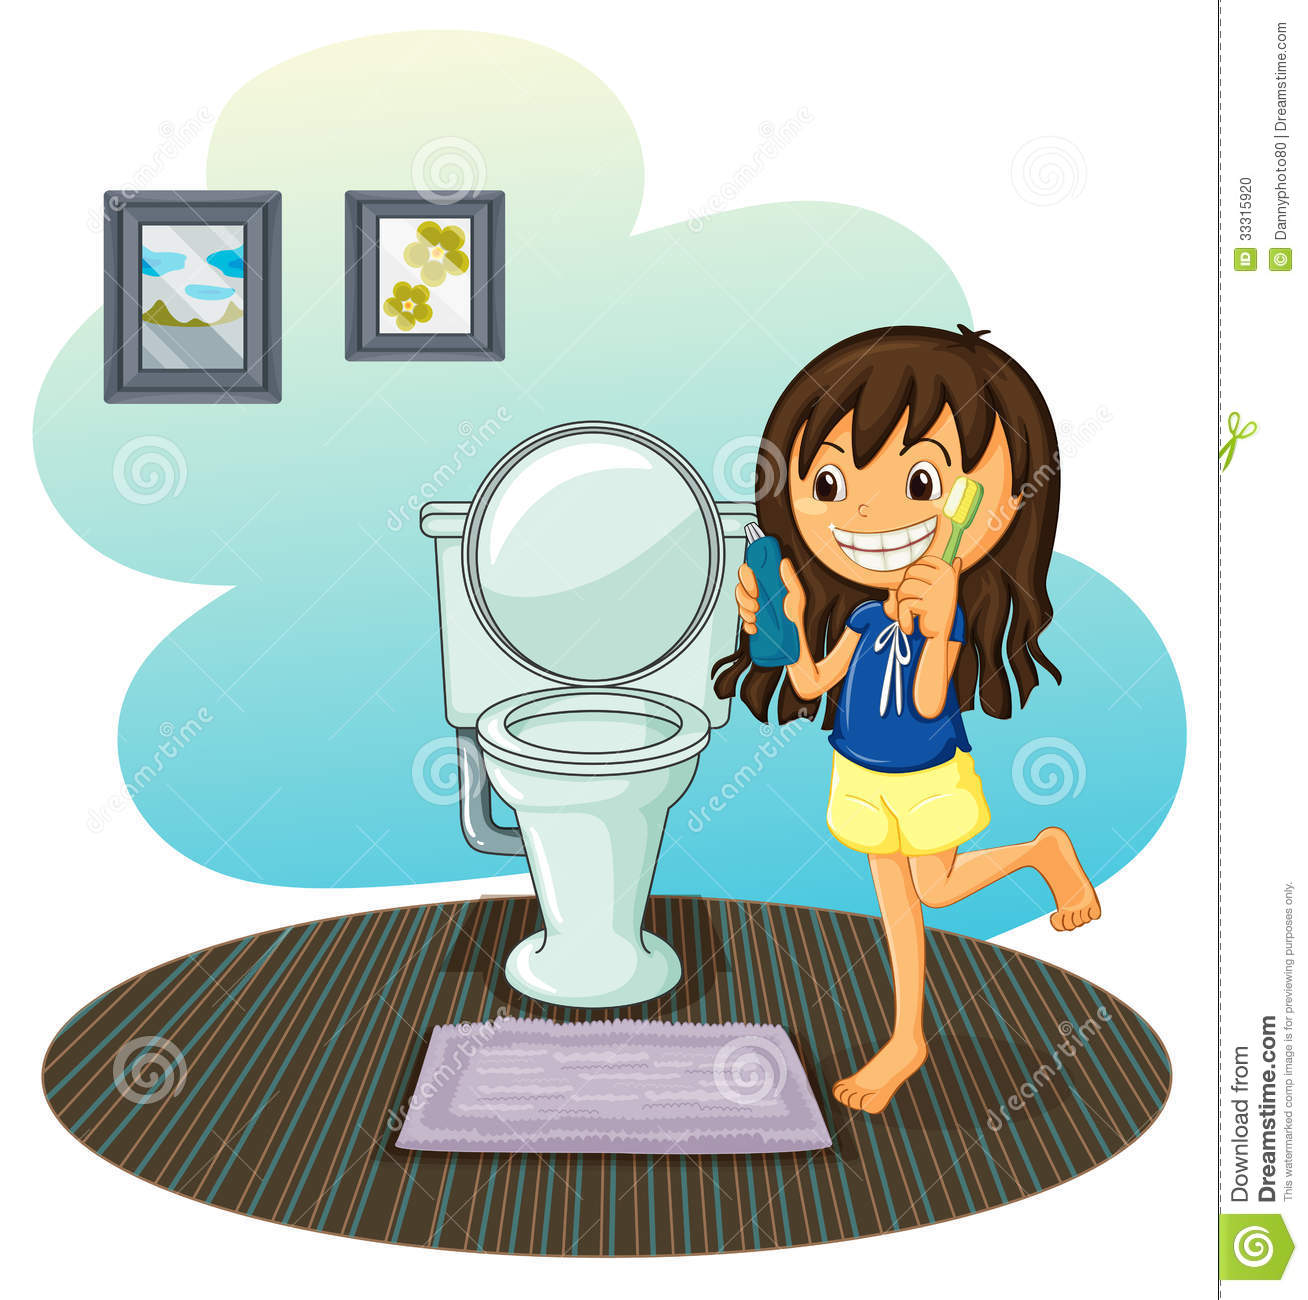 Free Restroom Cliparts Download Free Clip Art Free Clip: A Girl In The Comfort Room Stock Vector. Illustration Of